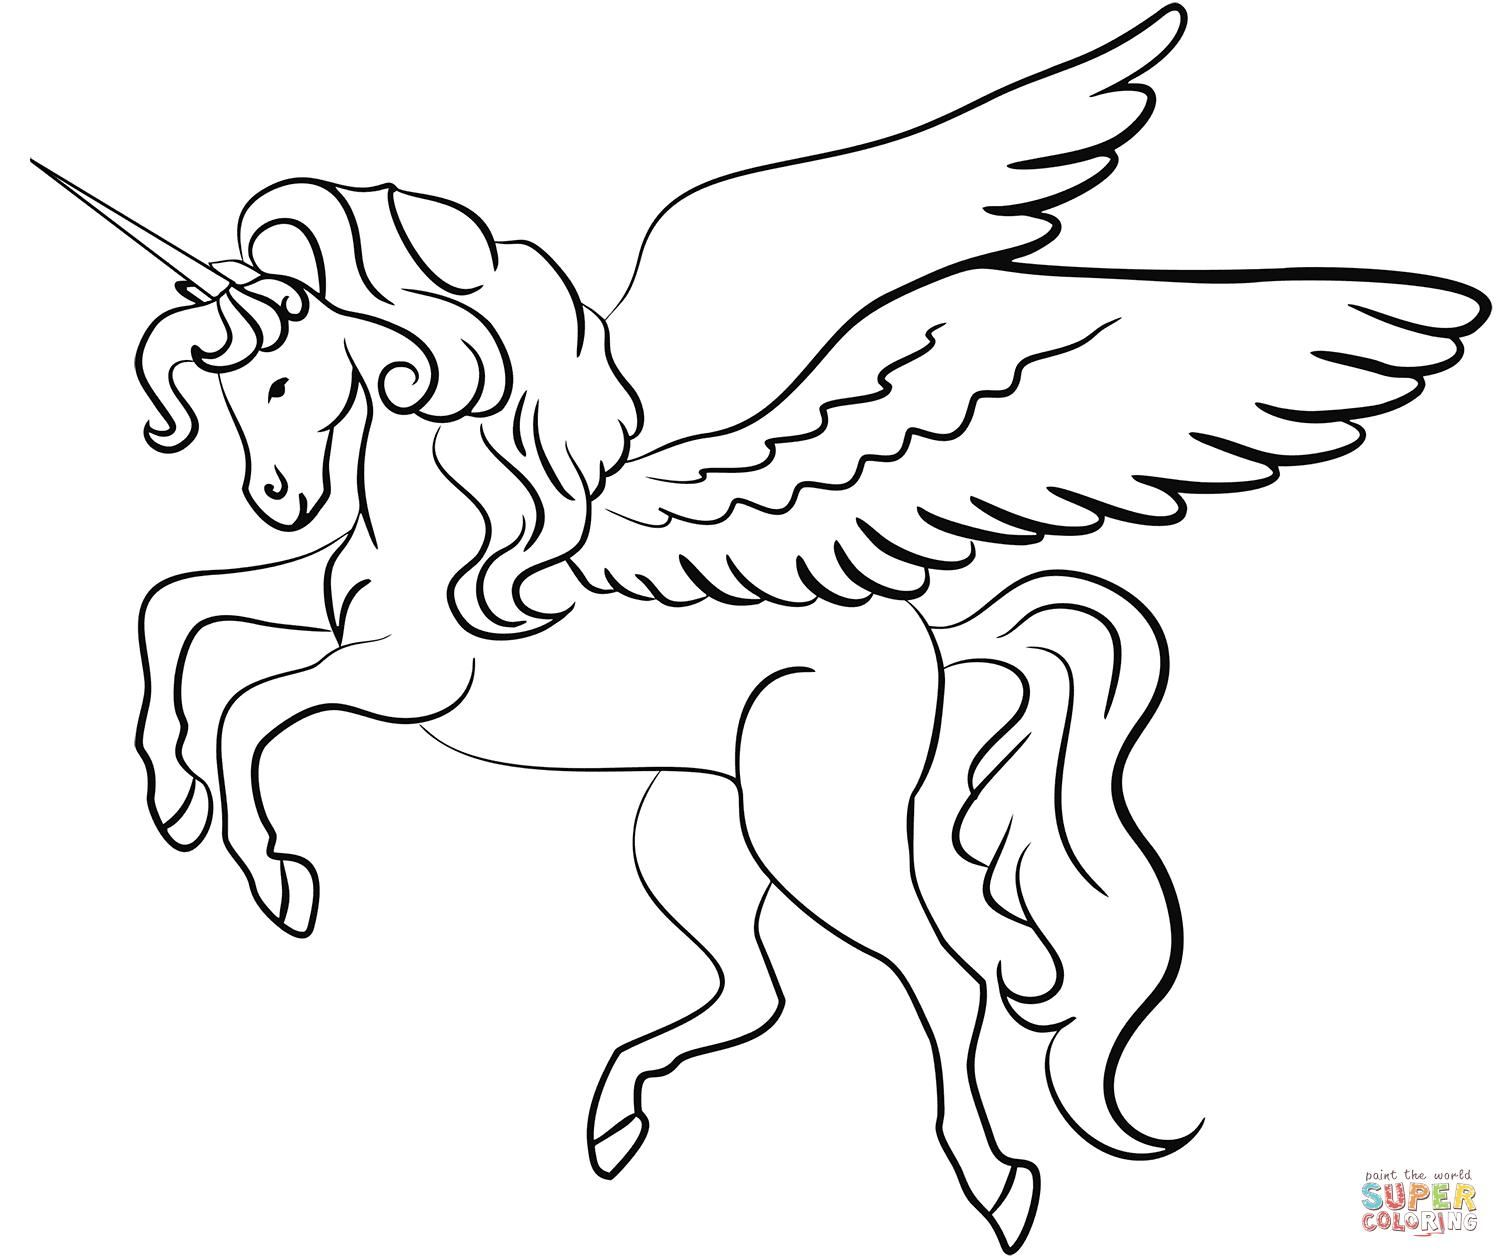 42 Coloring Page Unicorn With Wings Unicorn Coloring Pages Coloring Pages Unicorn Images